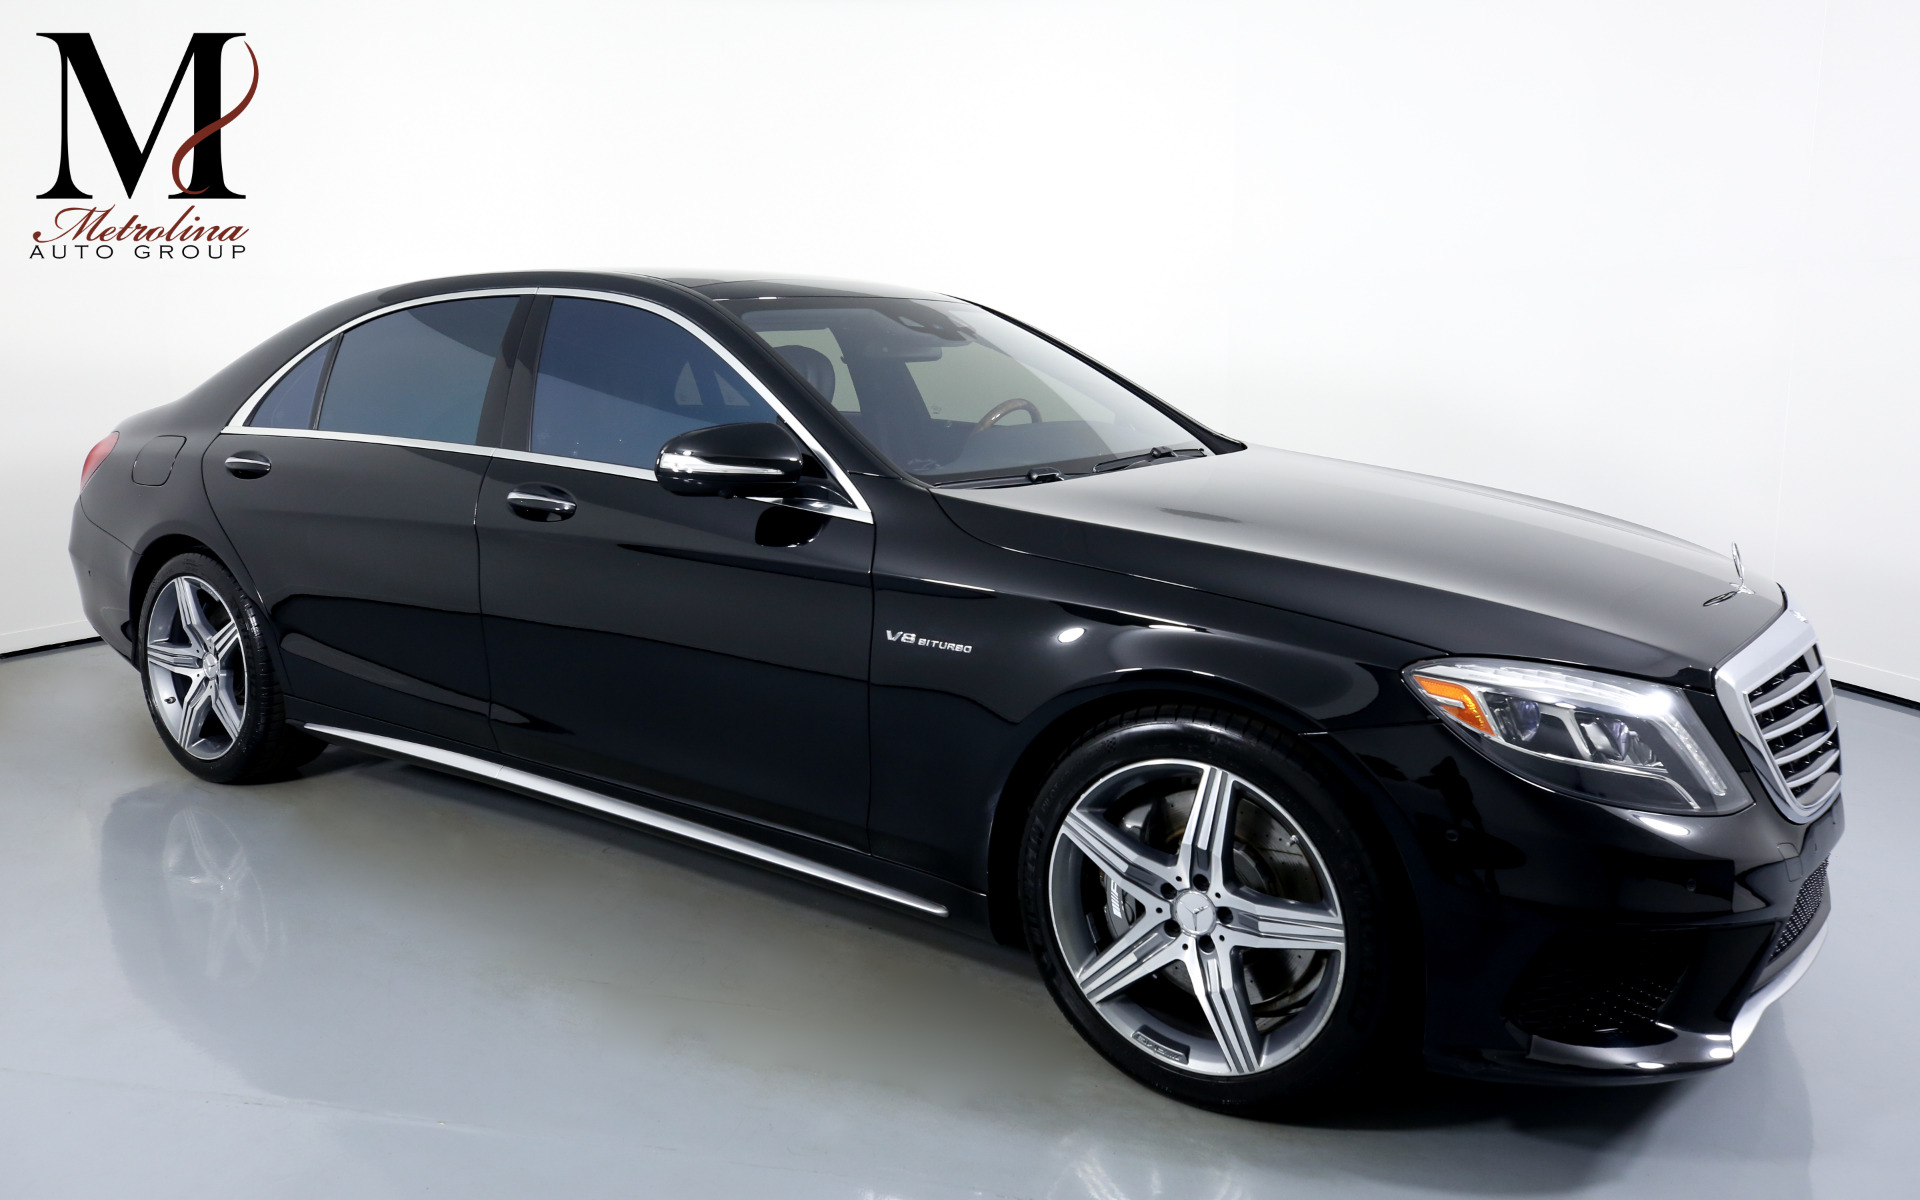 Used 2014 Mercedes-Benz S-Class S 63 AMG for sale Sold at Metrolina Auto Group in Charlotte NC 28217 - 1